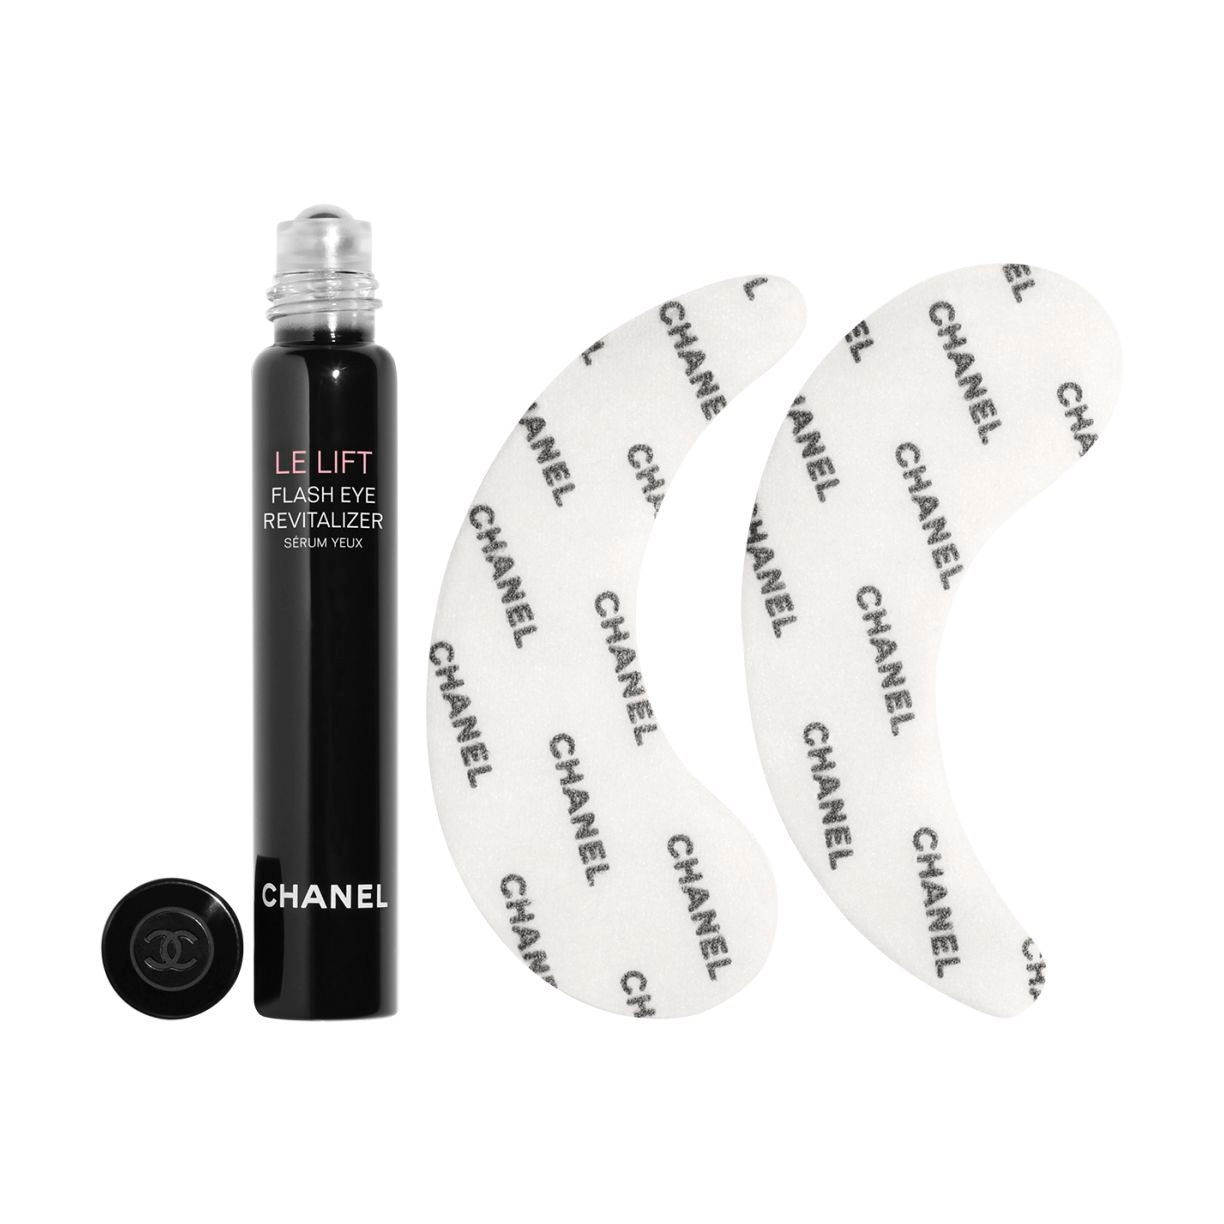 LE LIFT FESTIGENDER ANTI-FALTEN-EFFEKT FLASH EYE REVITALIZER